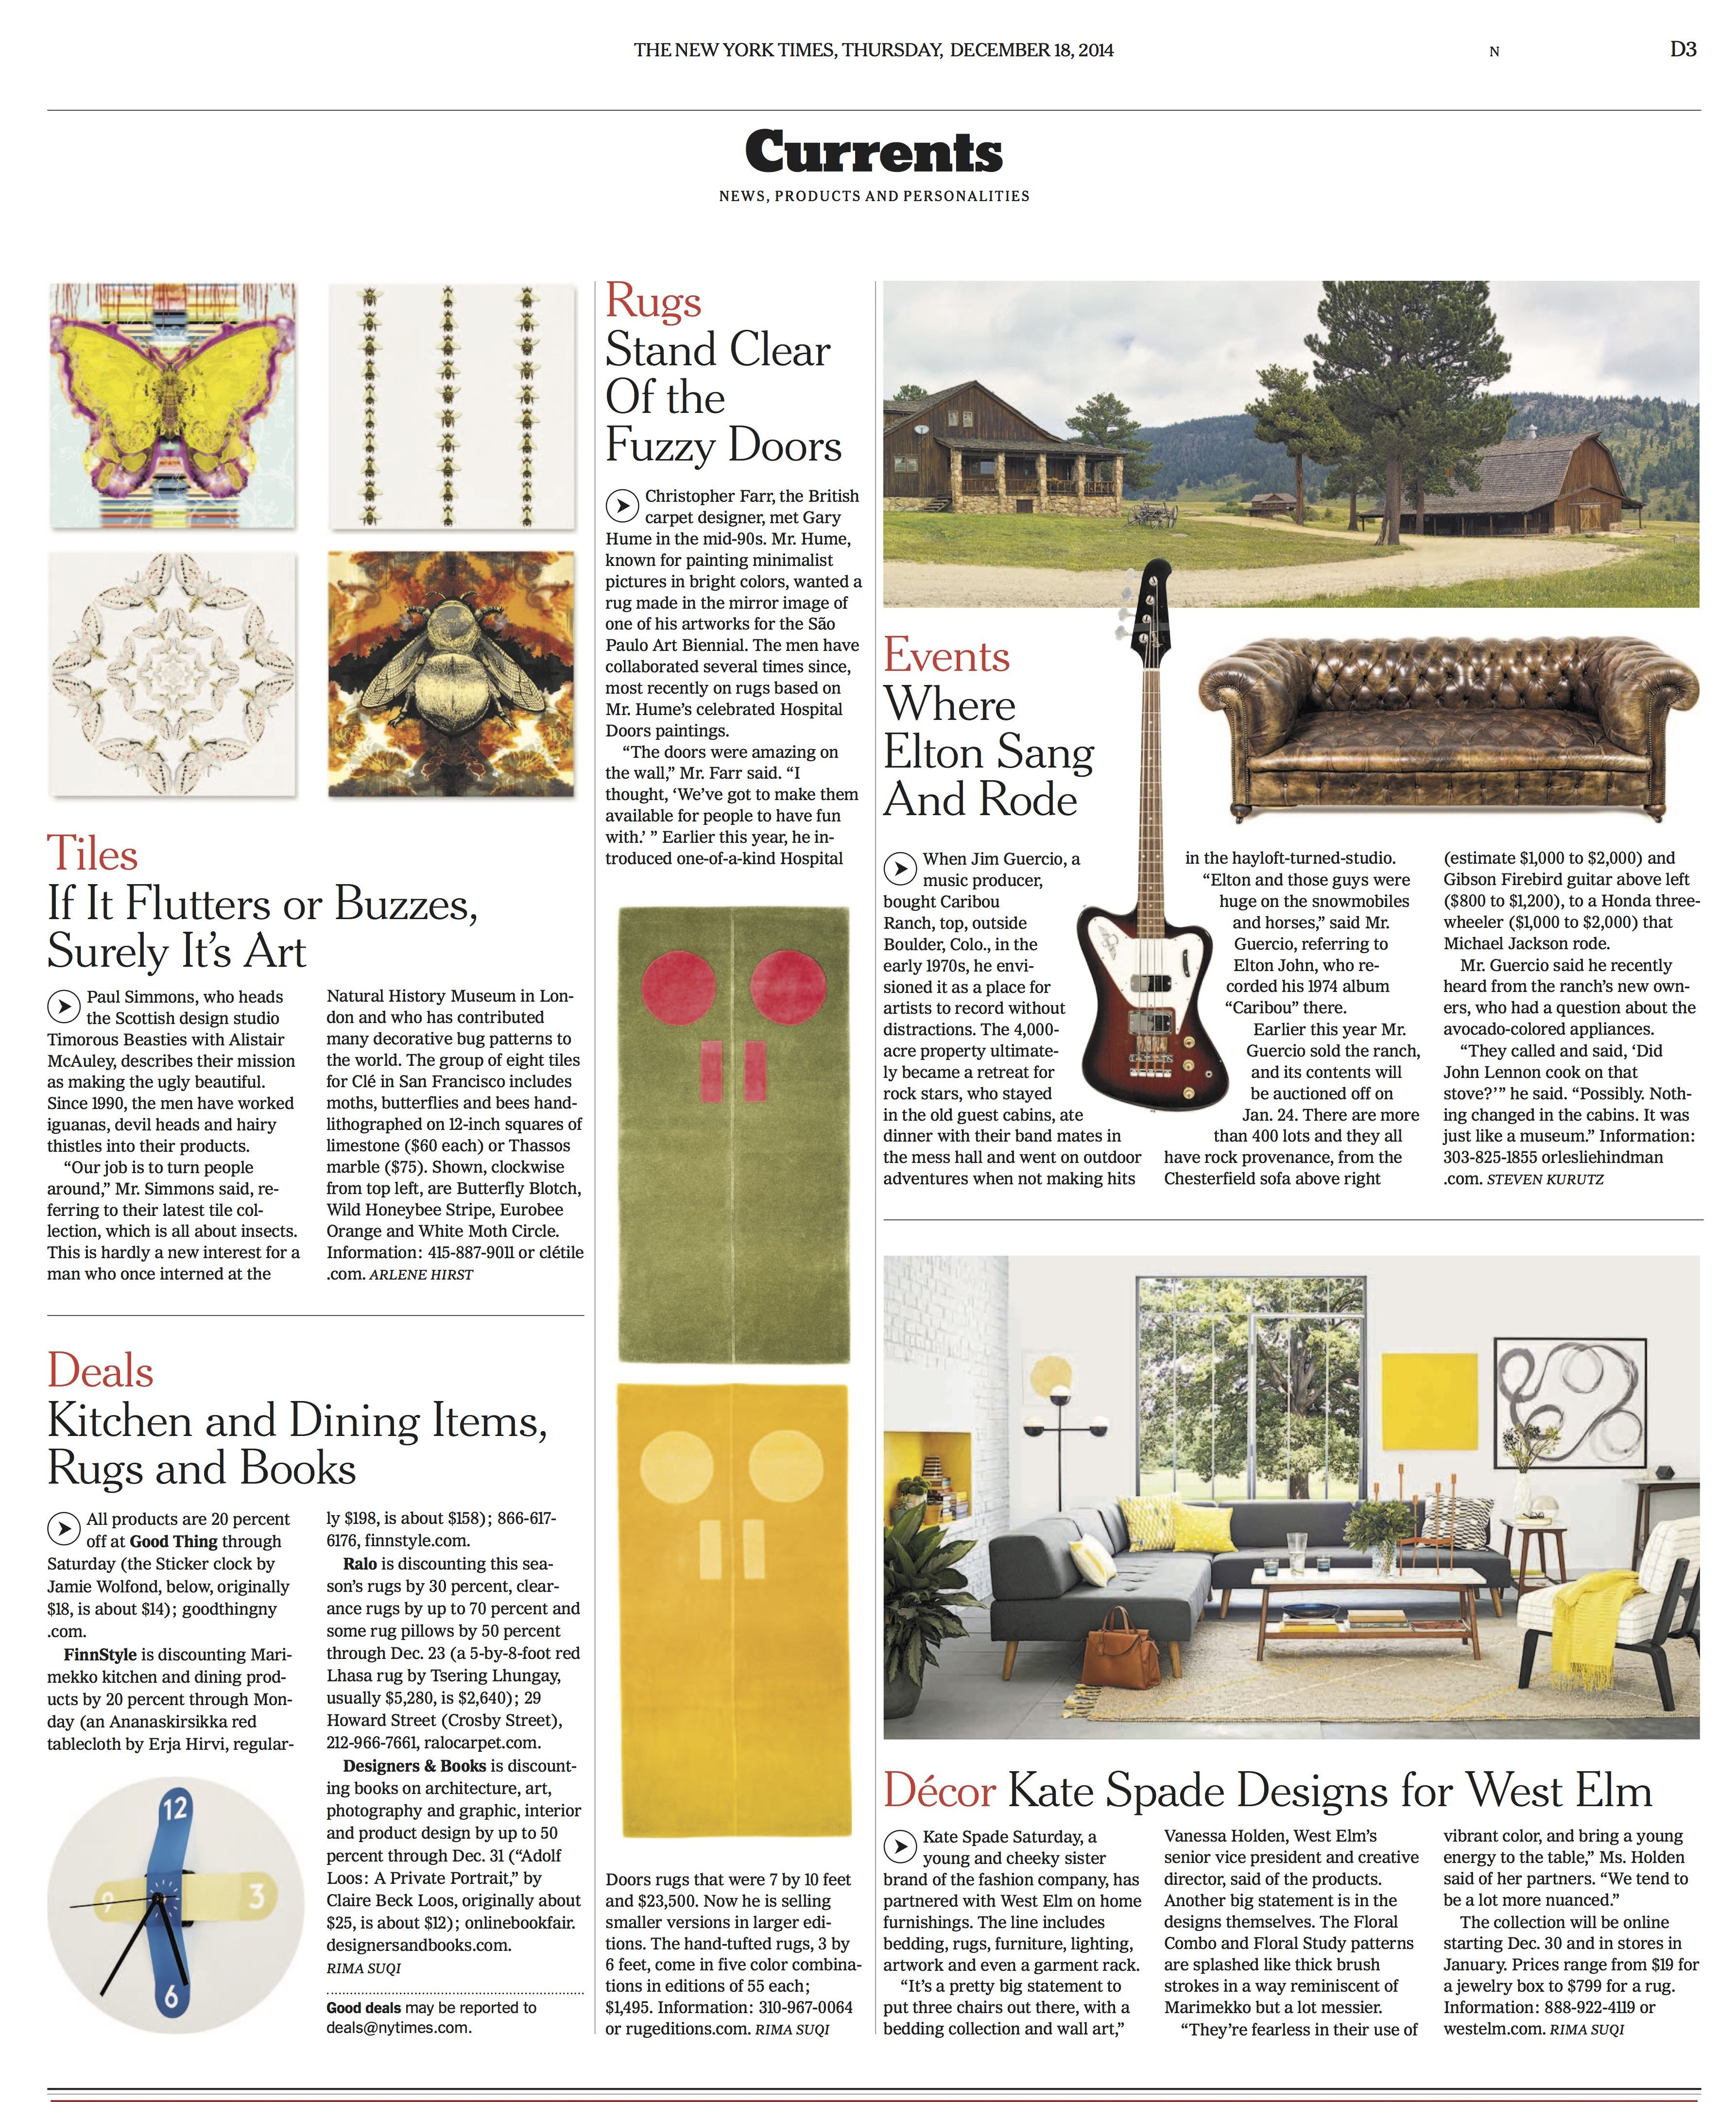 Features on Timorous Beasties in NY Times